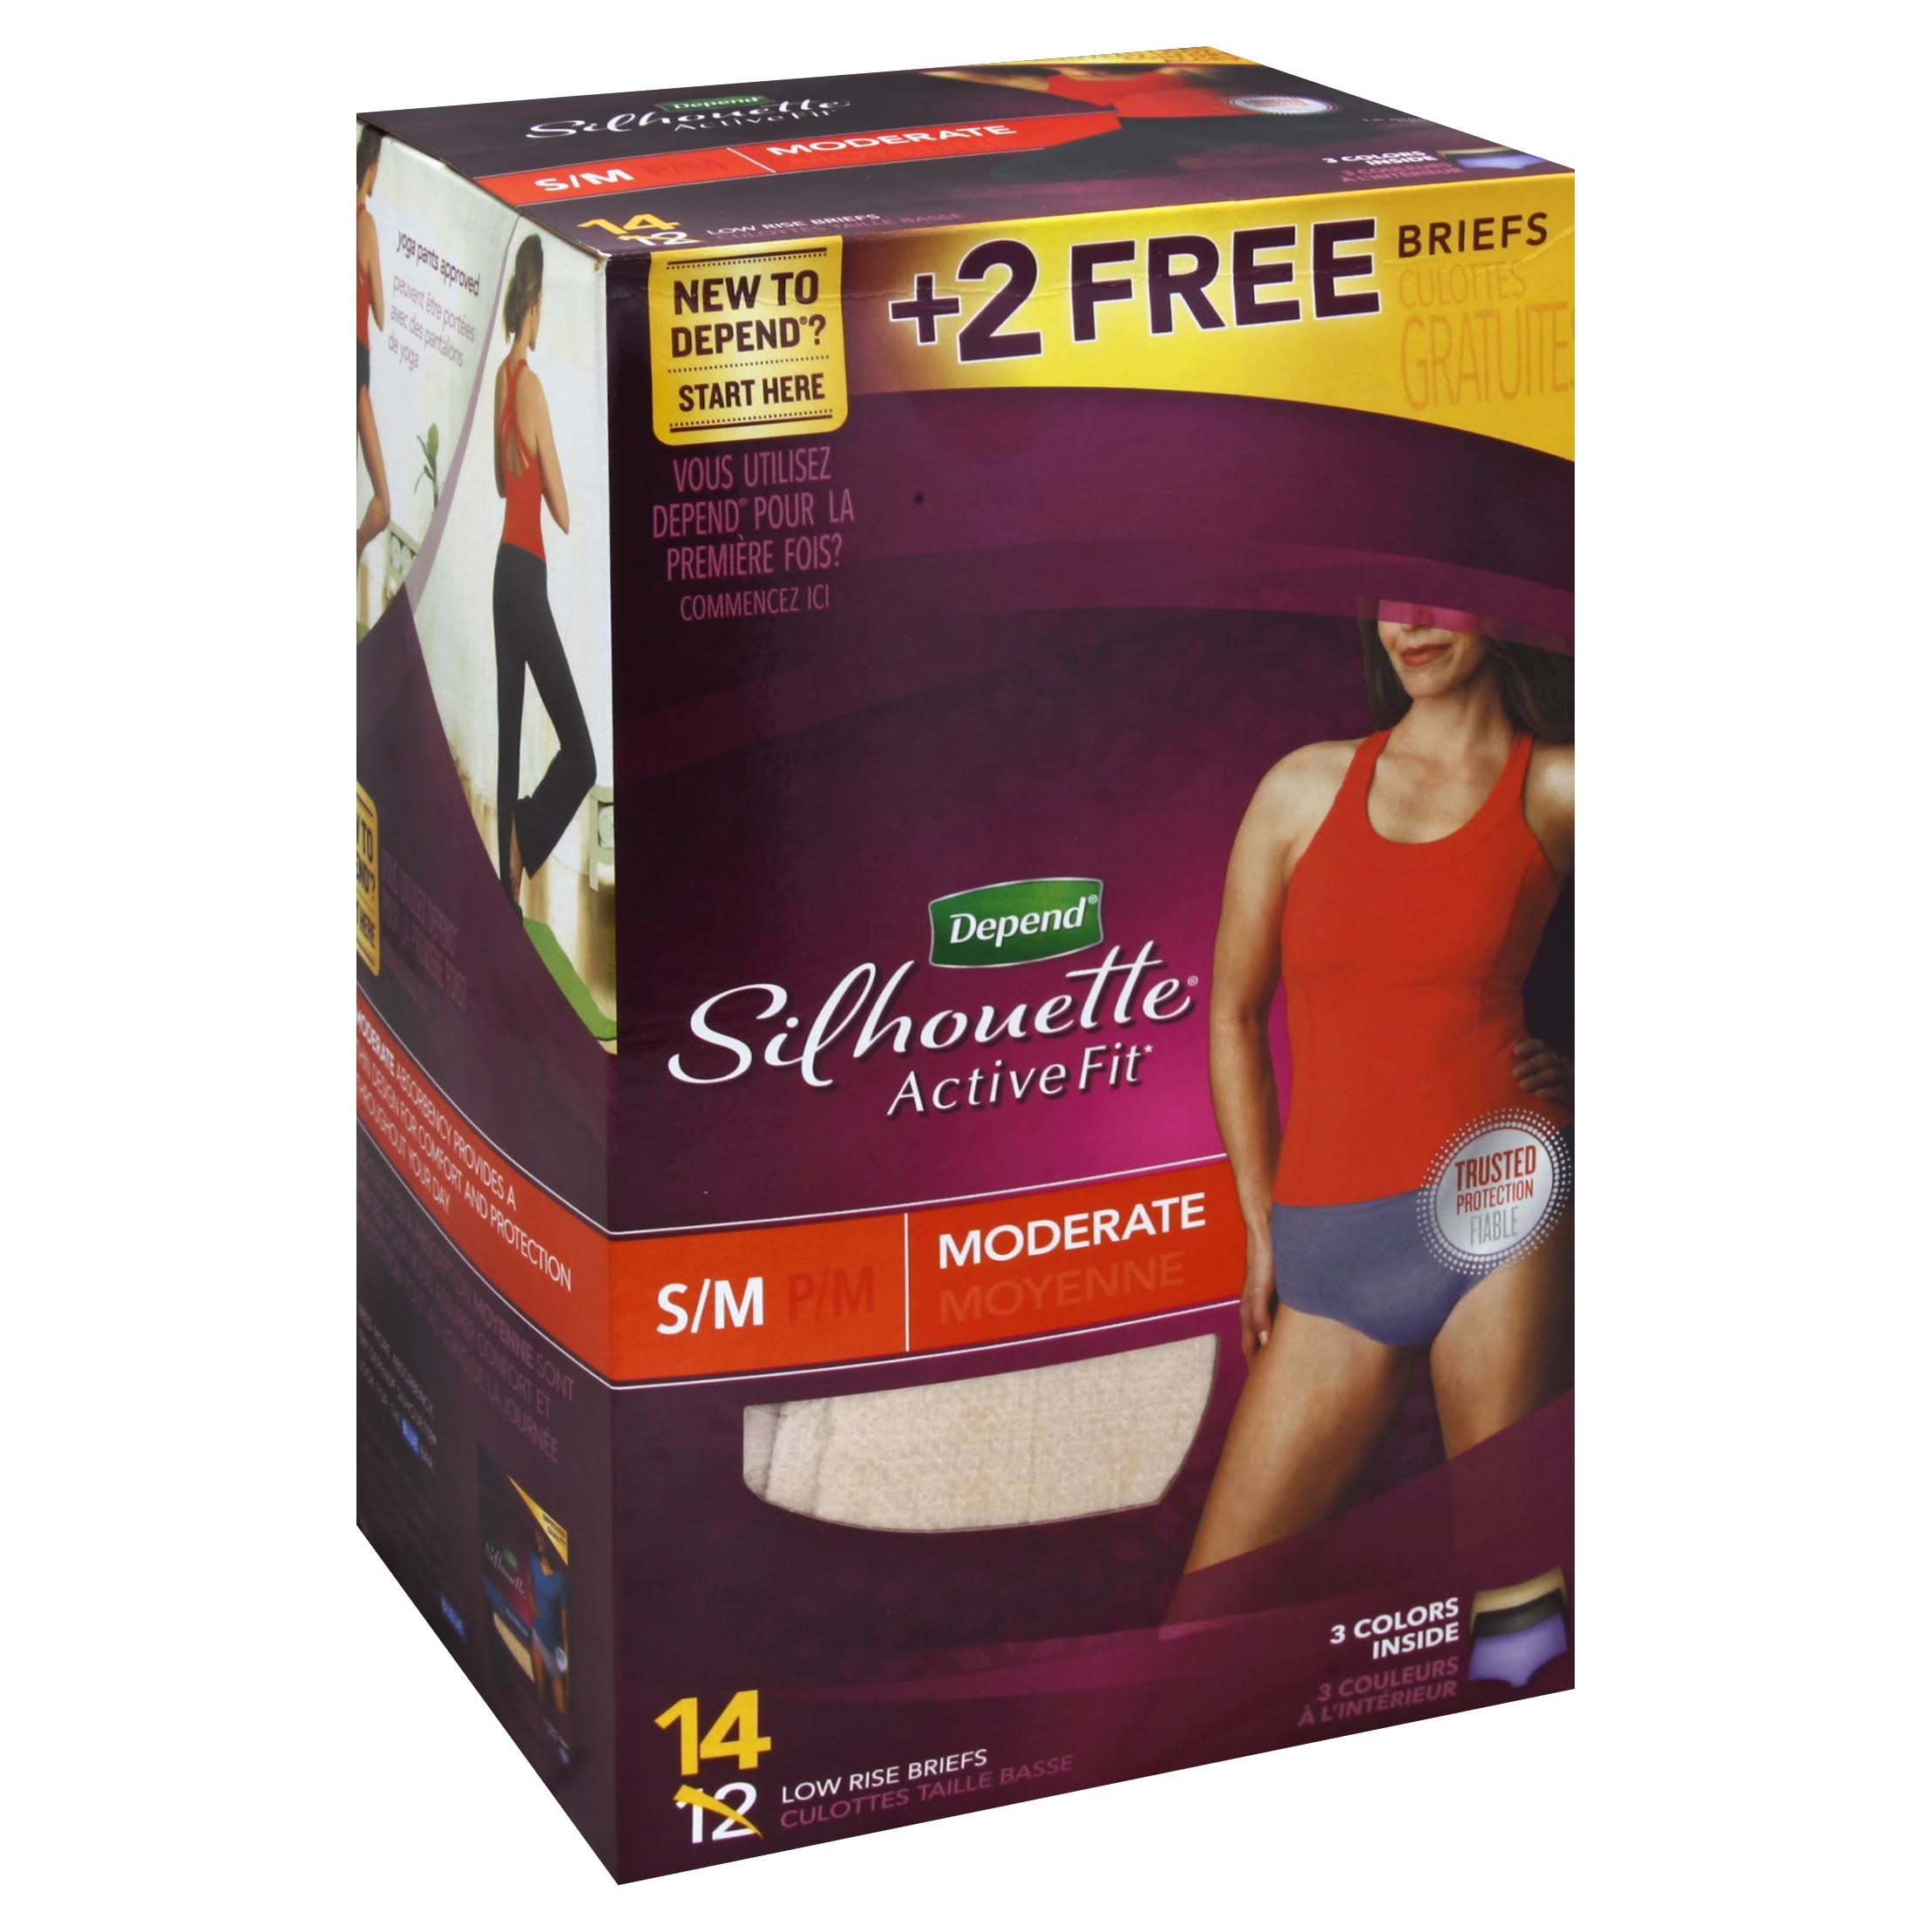 Depend Silhouette Active Fit Moderate Low Rise Briefs - Small, Medium, 14ct